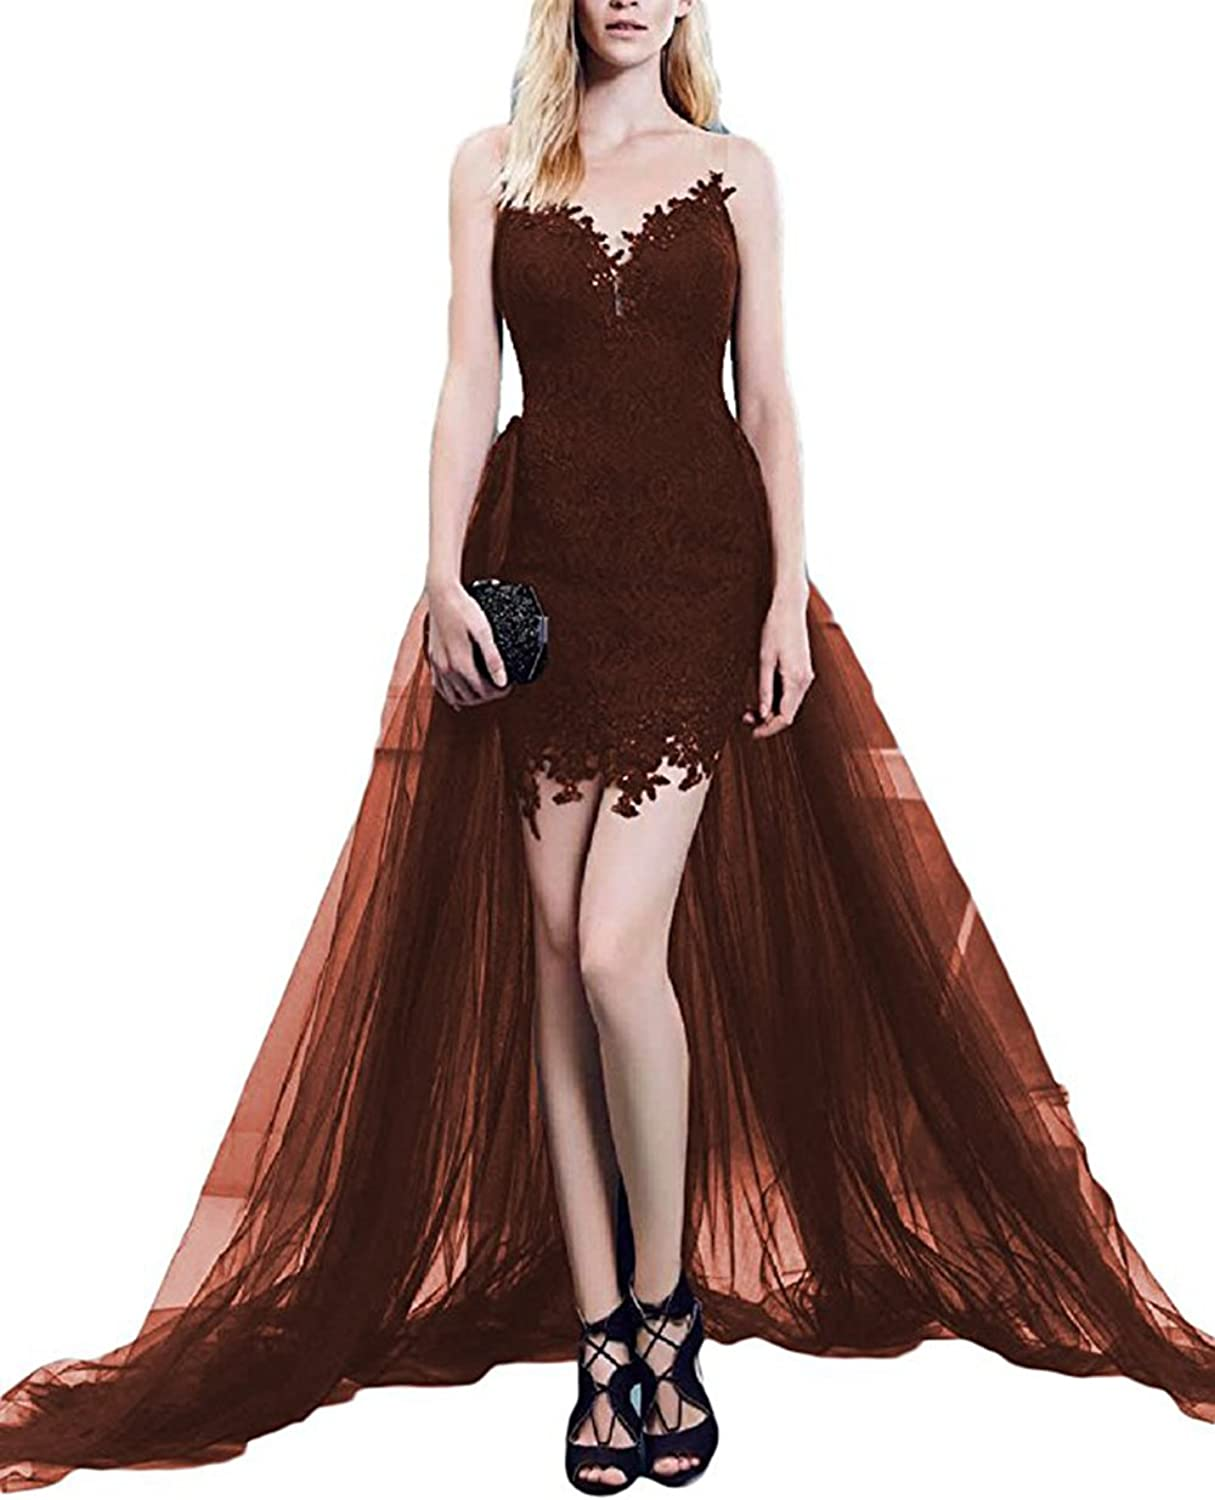 HerDress Women's 2018 Lace Prom Dress Formal Cocktail Evening Gowns with Detachable Train